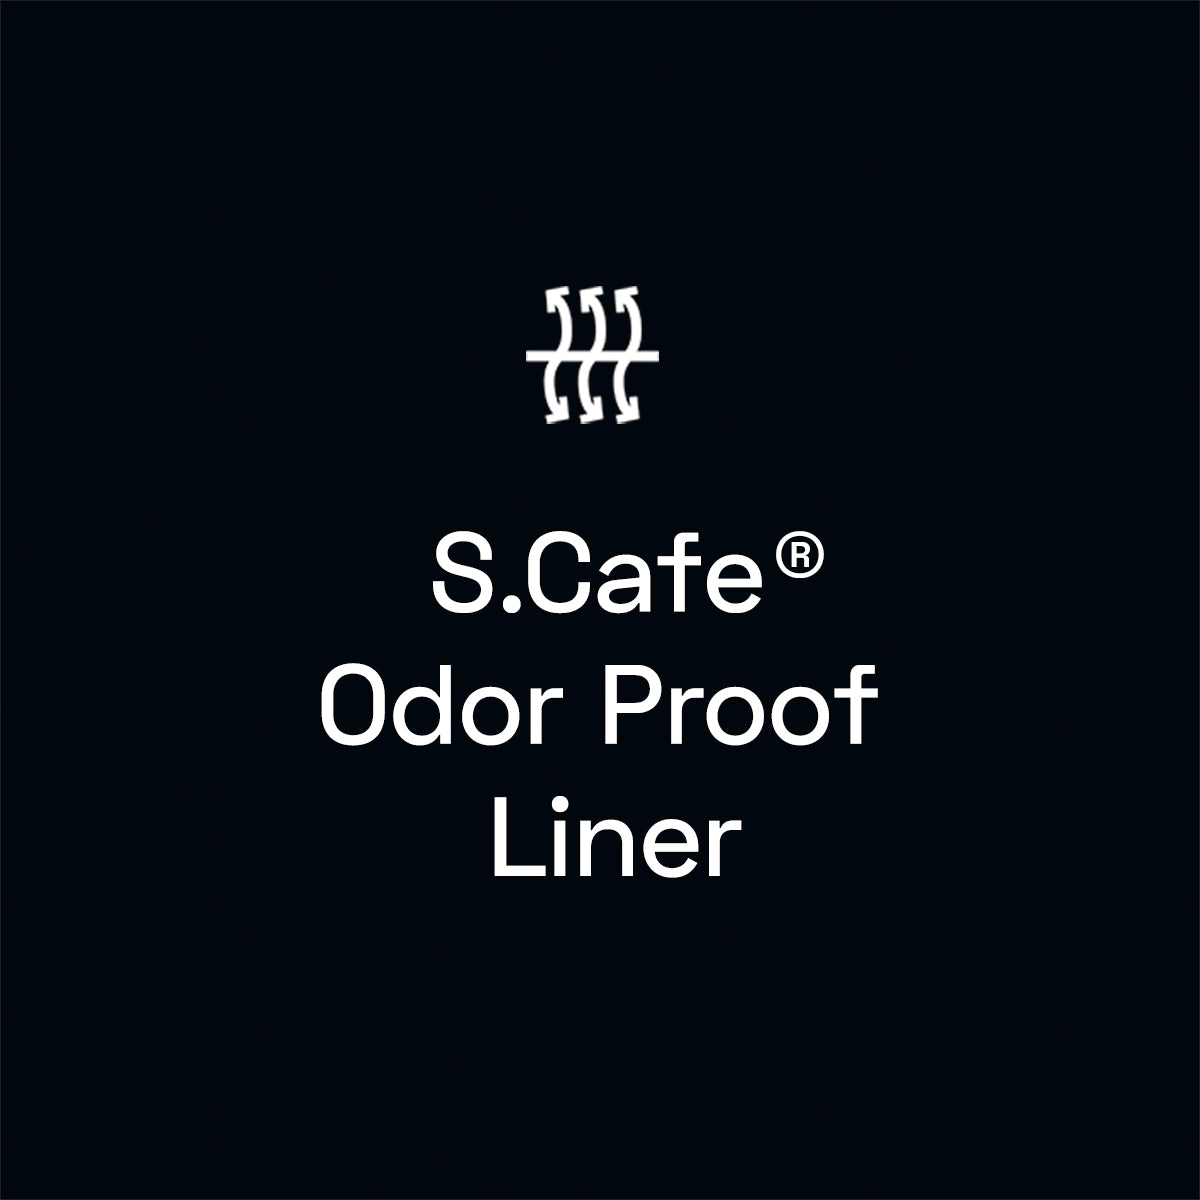 S. Cafe Odor Proof Liner